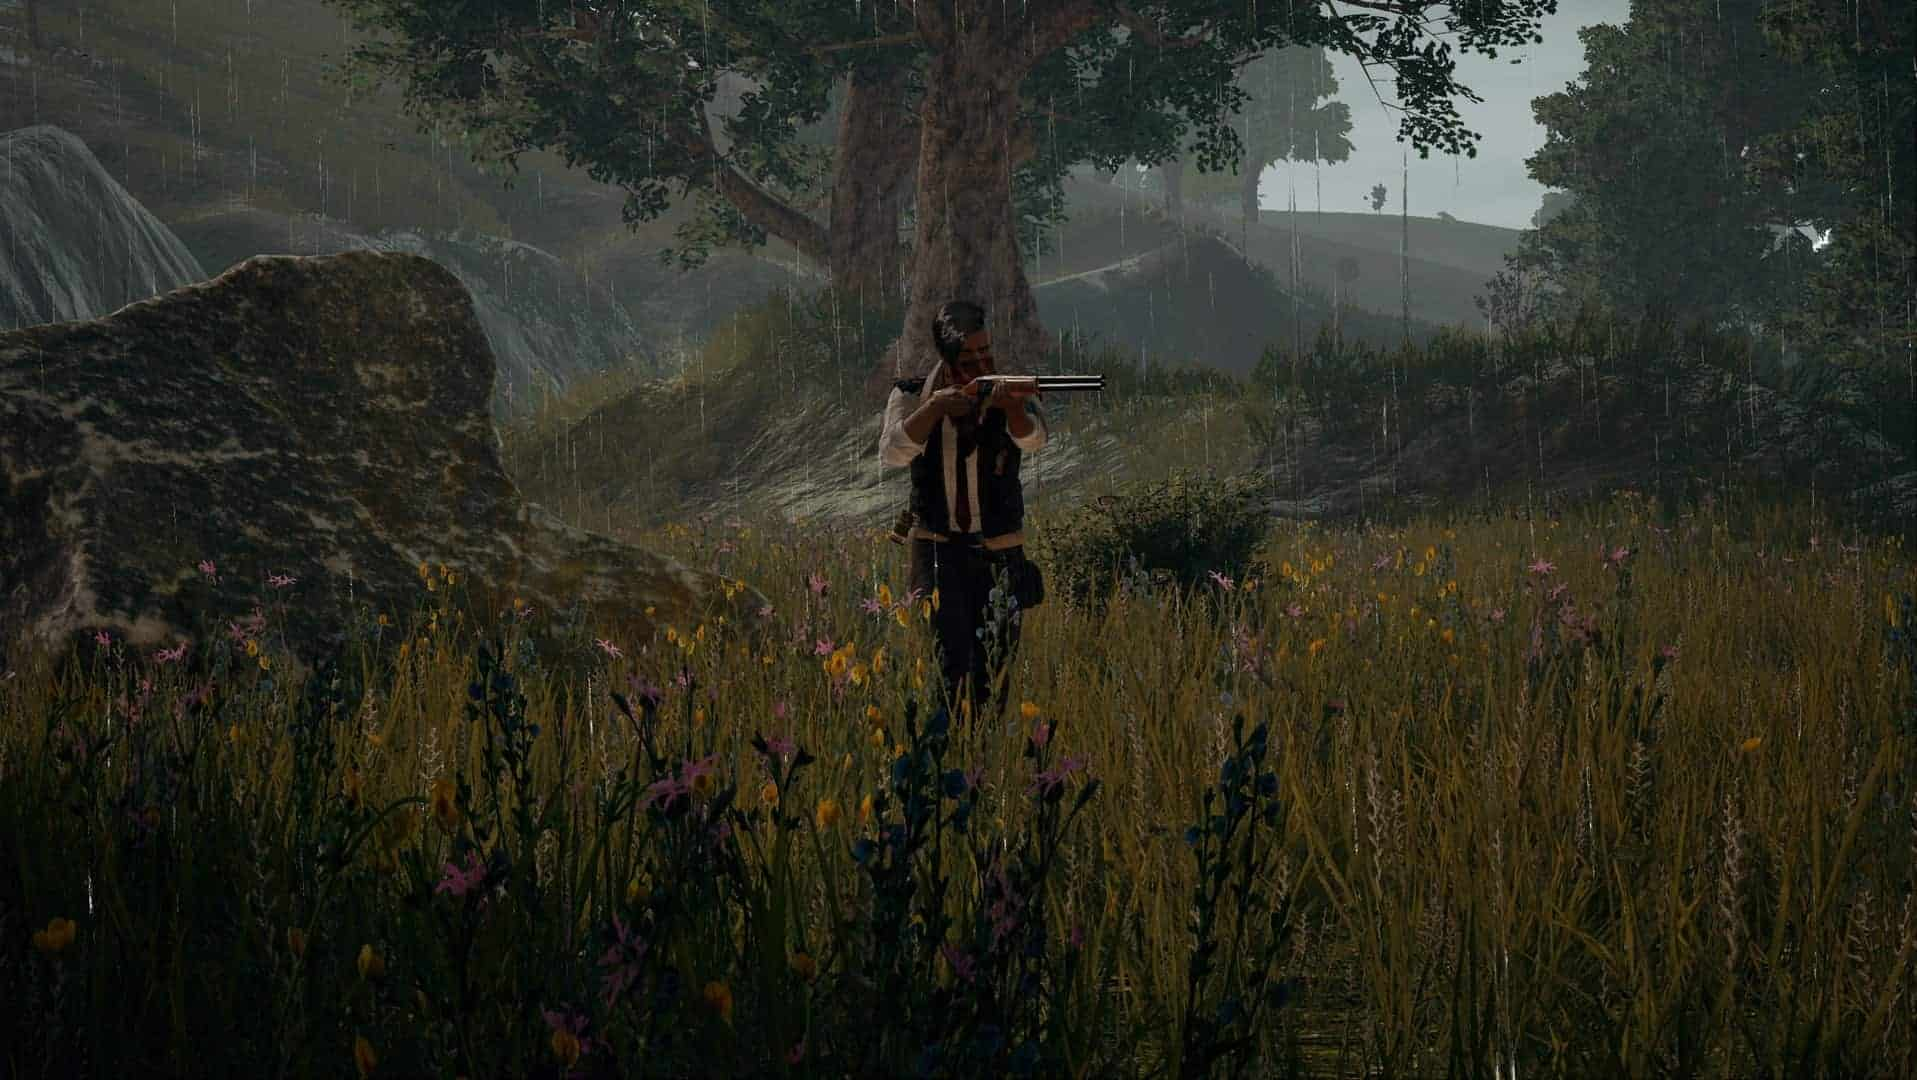 Pubg Playerunknown S Battlegrounds Game Hd 1920x1080 Y215: Playerunknown's Battlegrounds Complete Pc Game Download